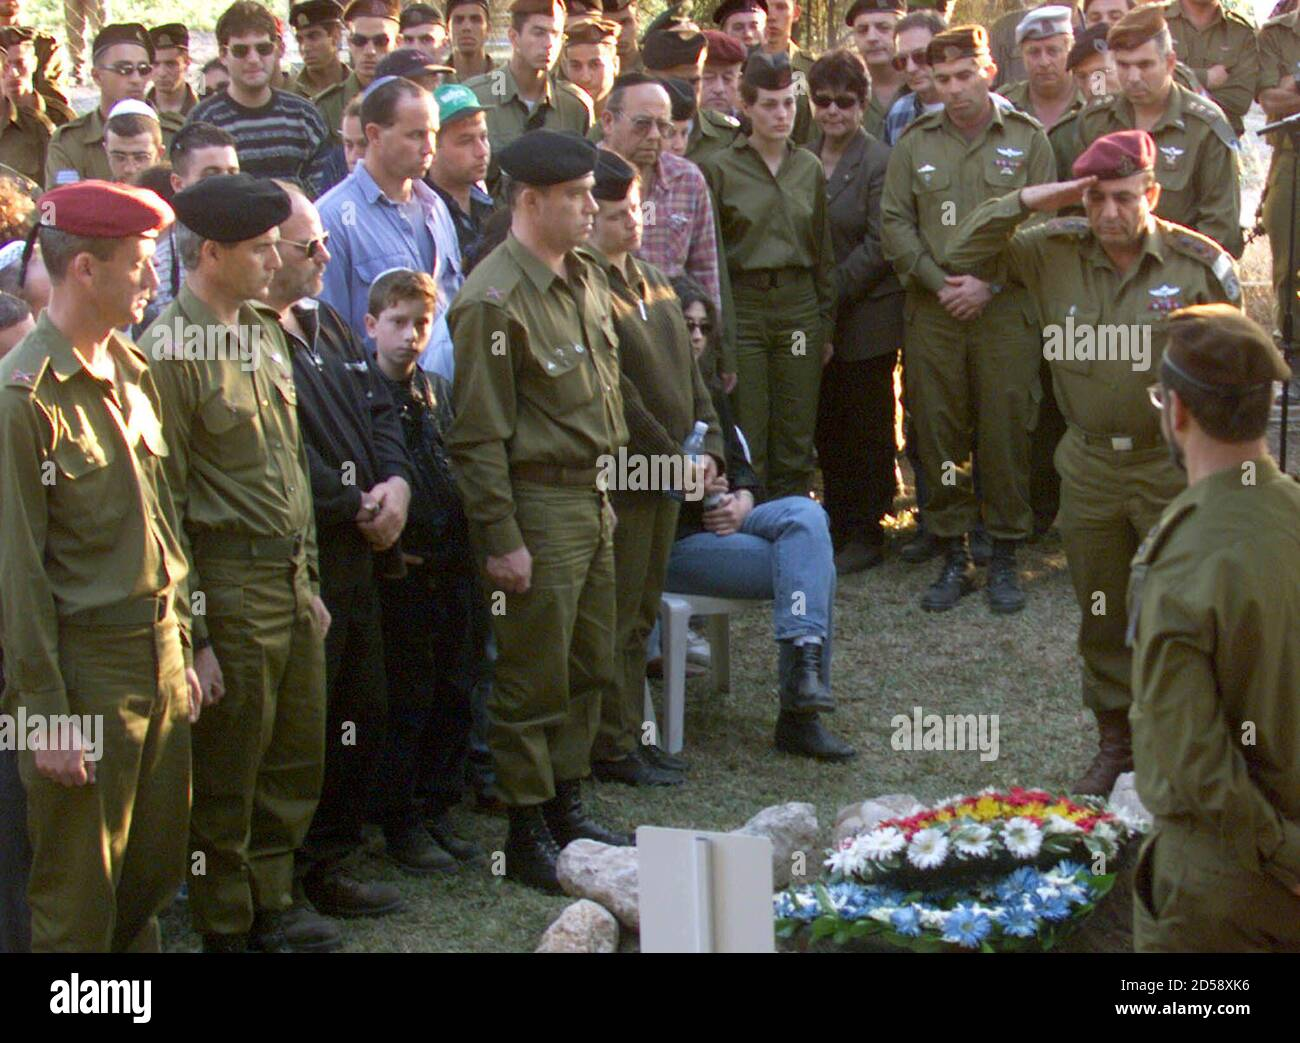 Israeli chief Shaul Mofaz salutes the fresh grave of Brigadier-General Erez Gerstein during a heroes funeral attended by thousands of mourners including senior army officers and politicians March 2. Gerstein, one of Israel's senior commander in its self-declared South Lebanon security zone, was killed alongside two soldiers and a civilian radio reporter when their convoy was attacked by pro-Iranian Hizbollah guerrillas in South Lebanon two days ago.  DPS/WS Stock Photo